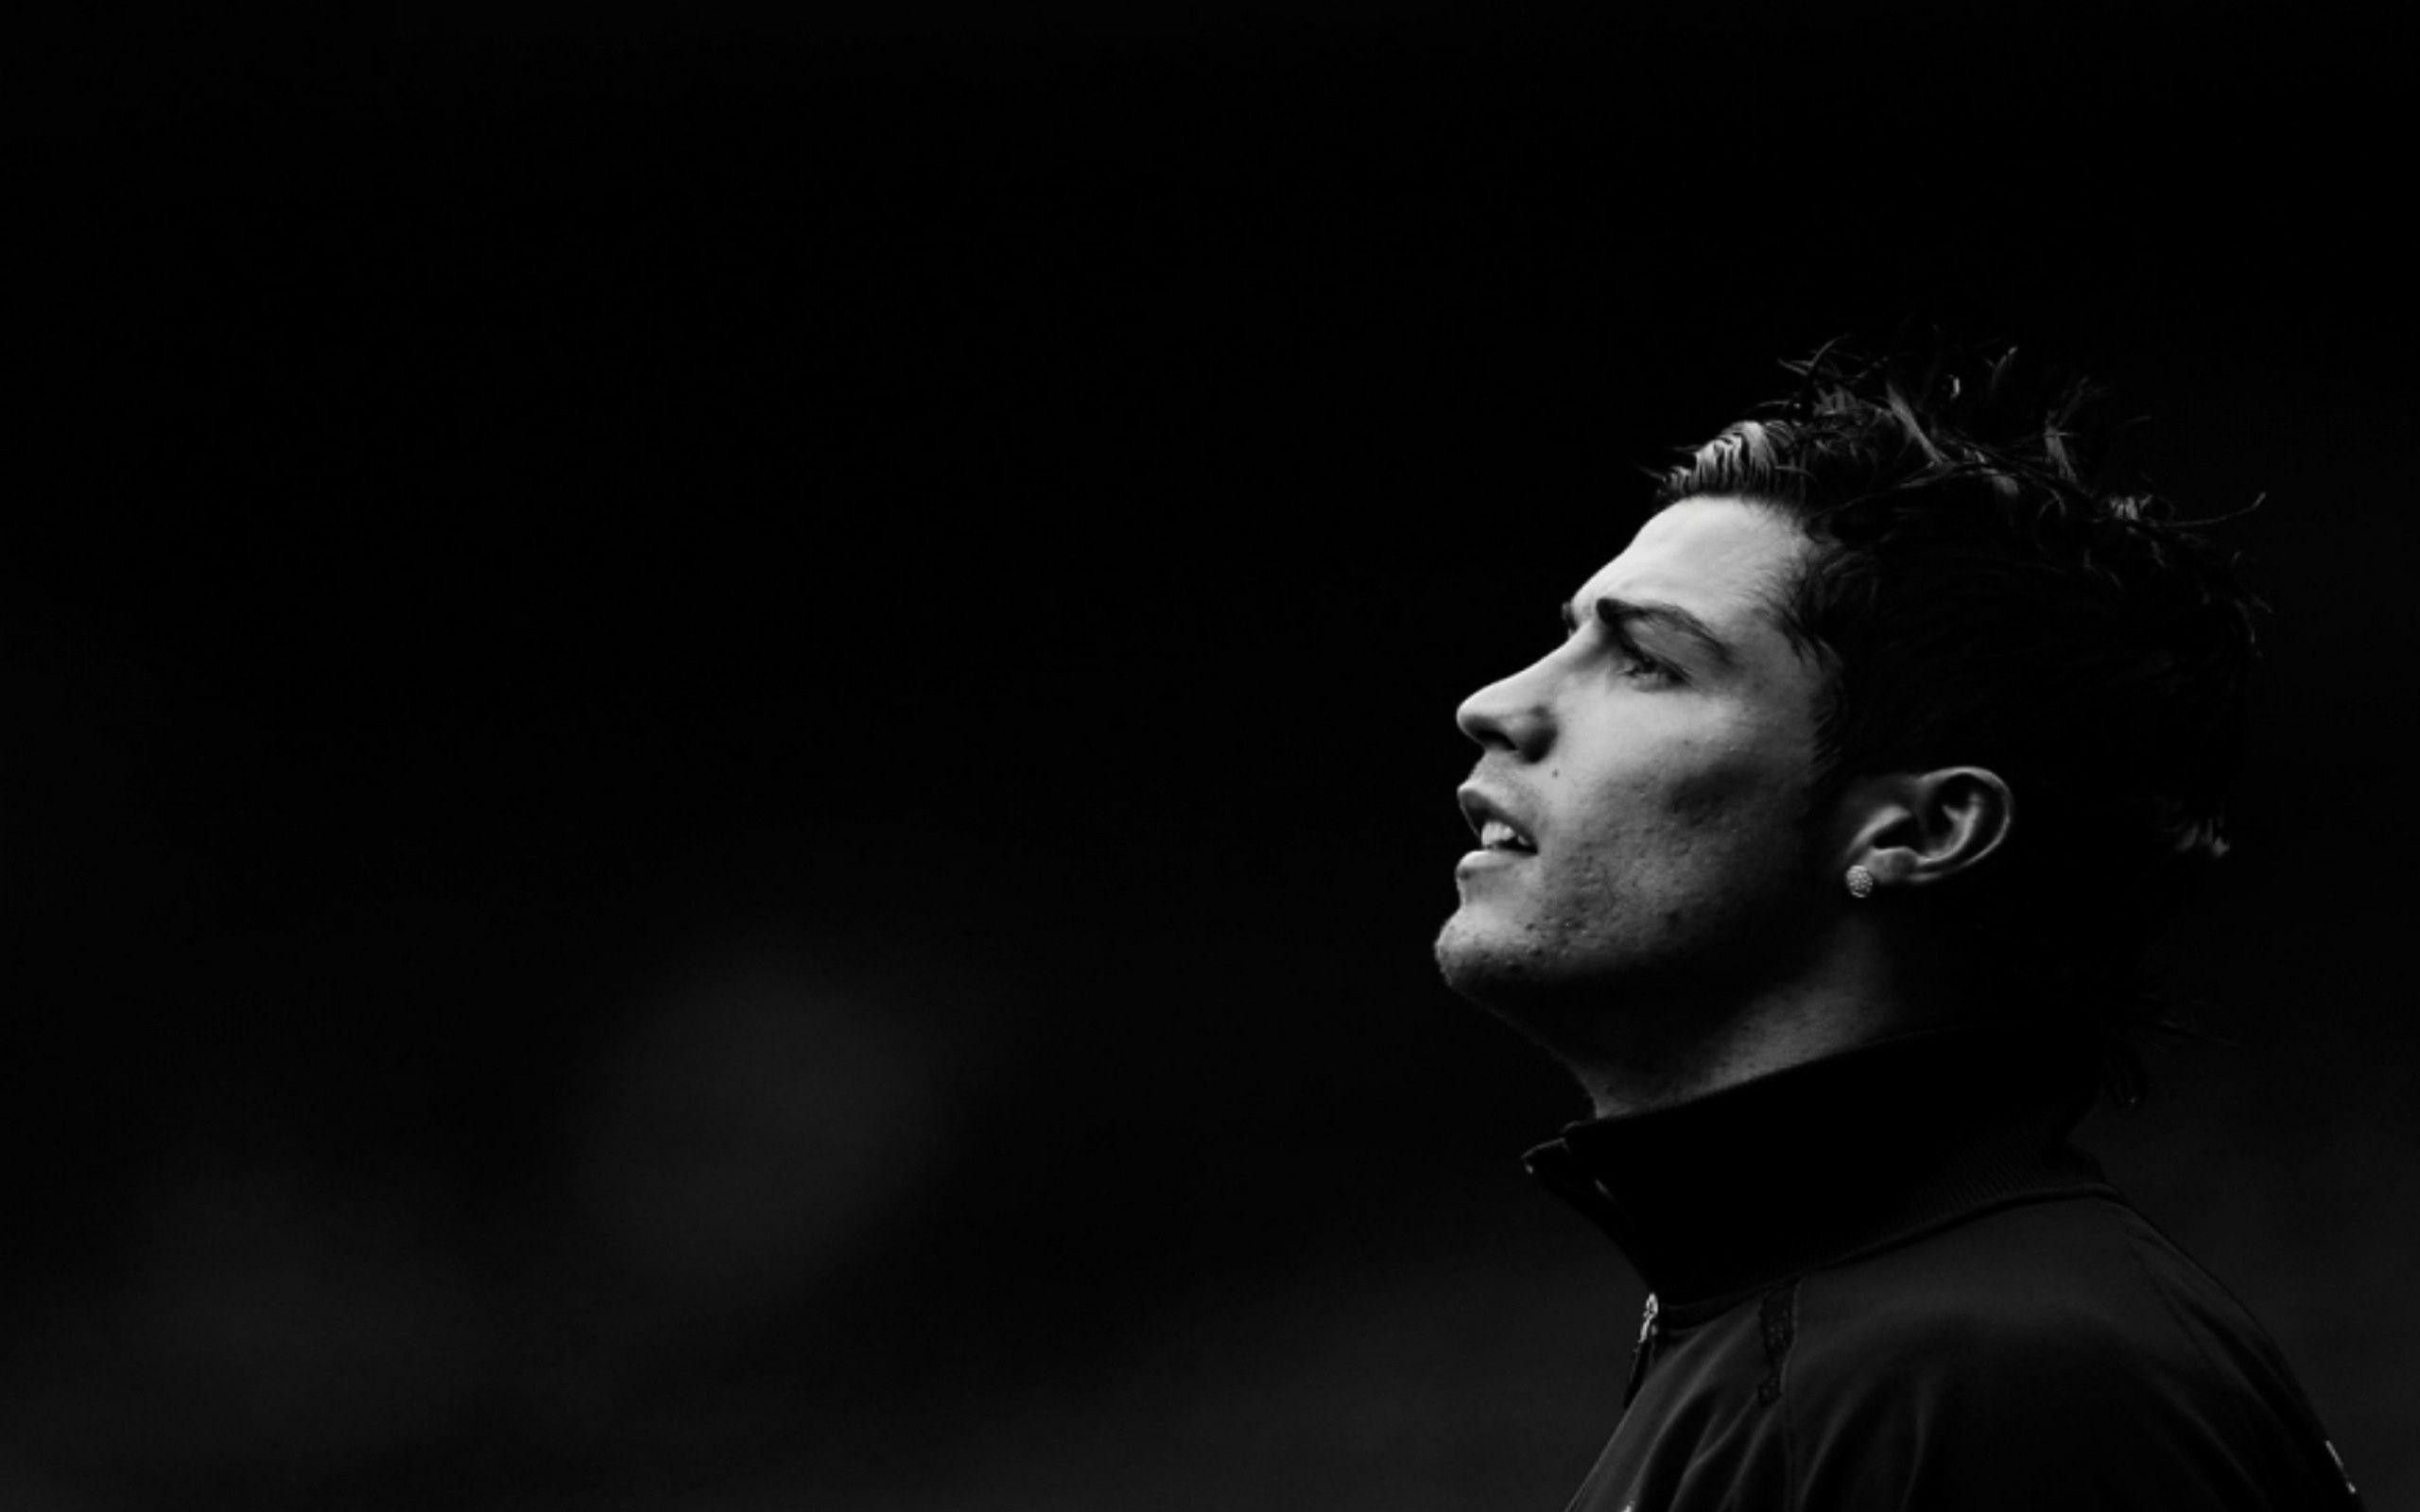 Cristiano Ronaldo Wallpapers – Celebrity Wallpapers